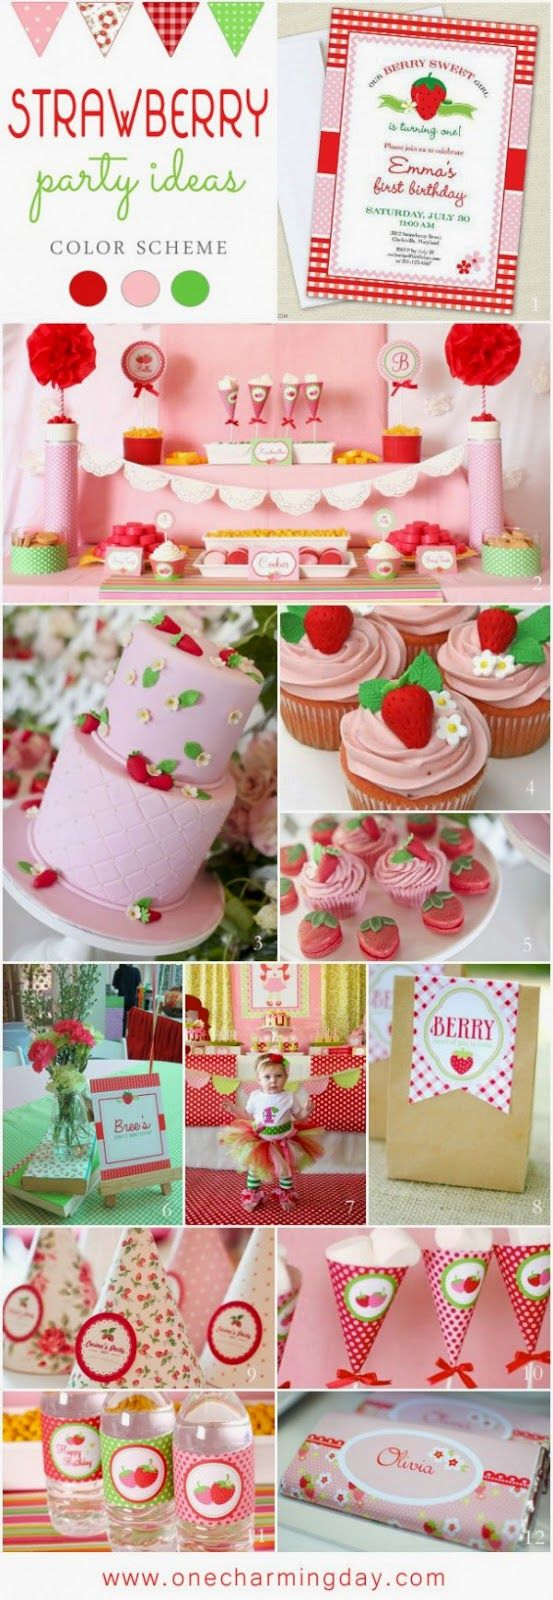 34 Creative Girl First Birthday Party Themes And Ideas First Birthday Party Themes Strawberry Party Girl Birthday Themes